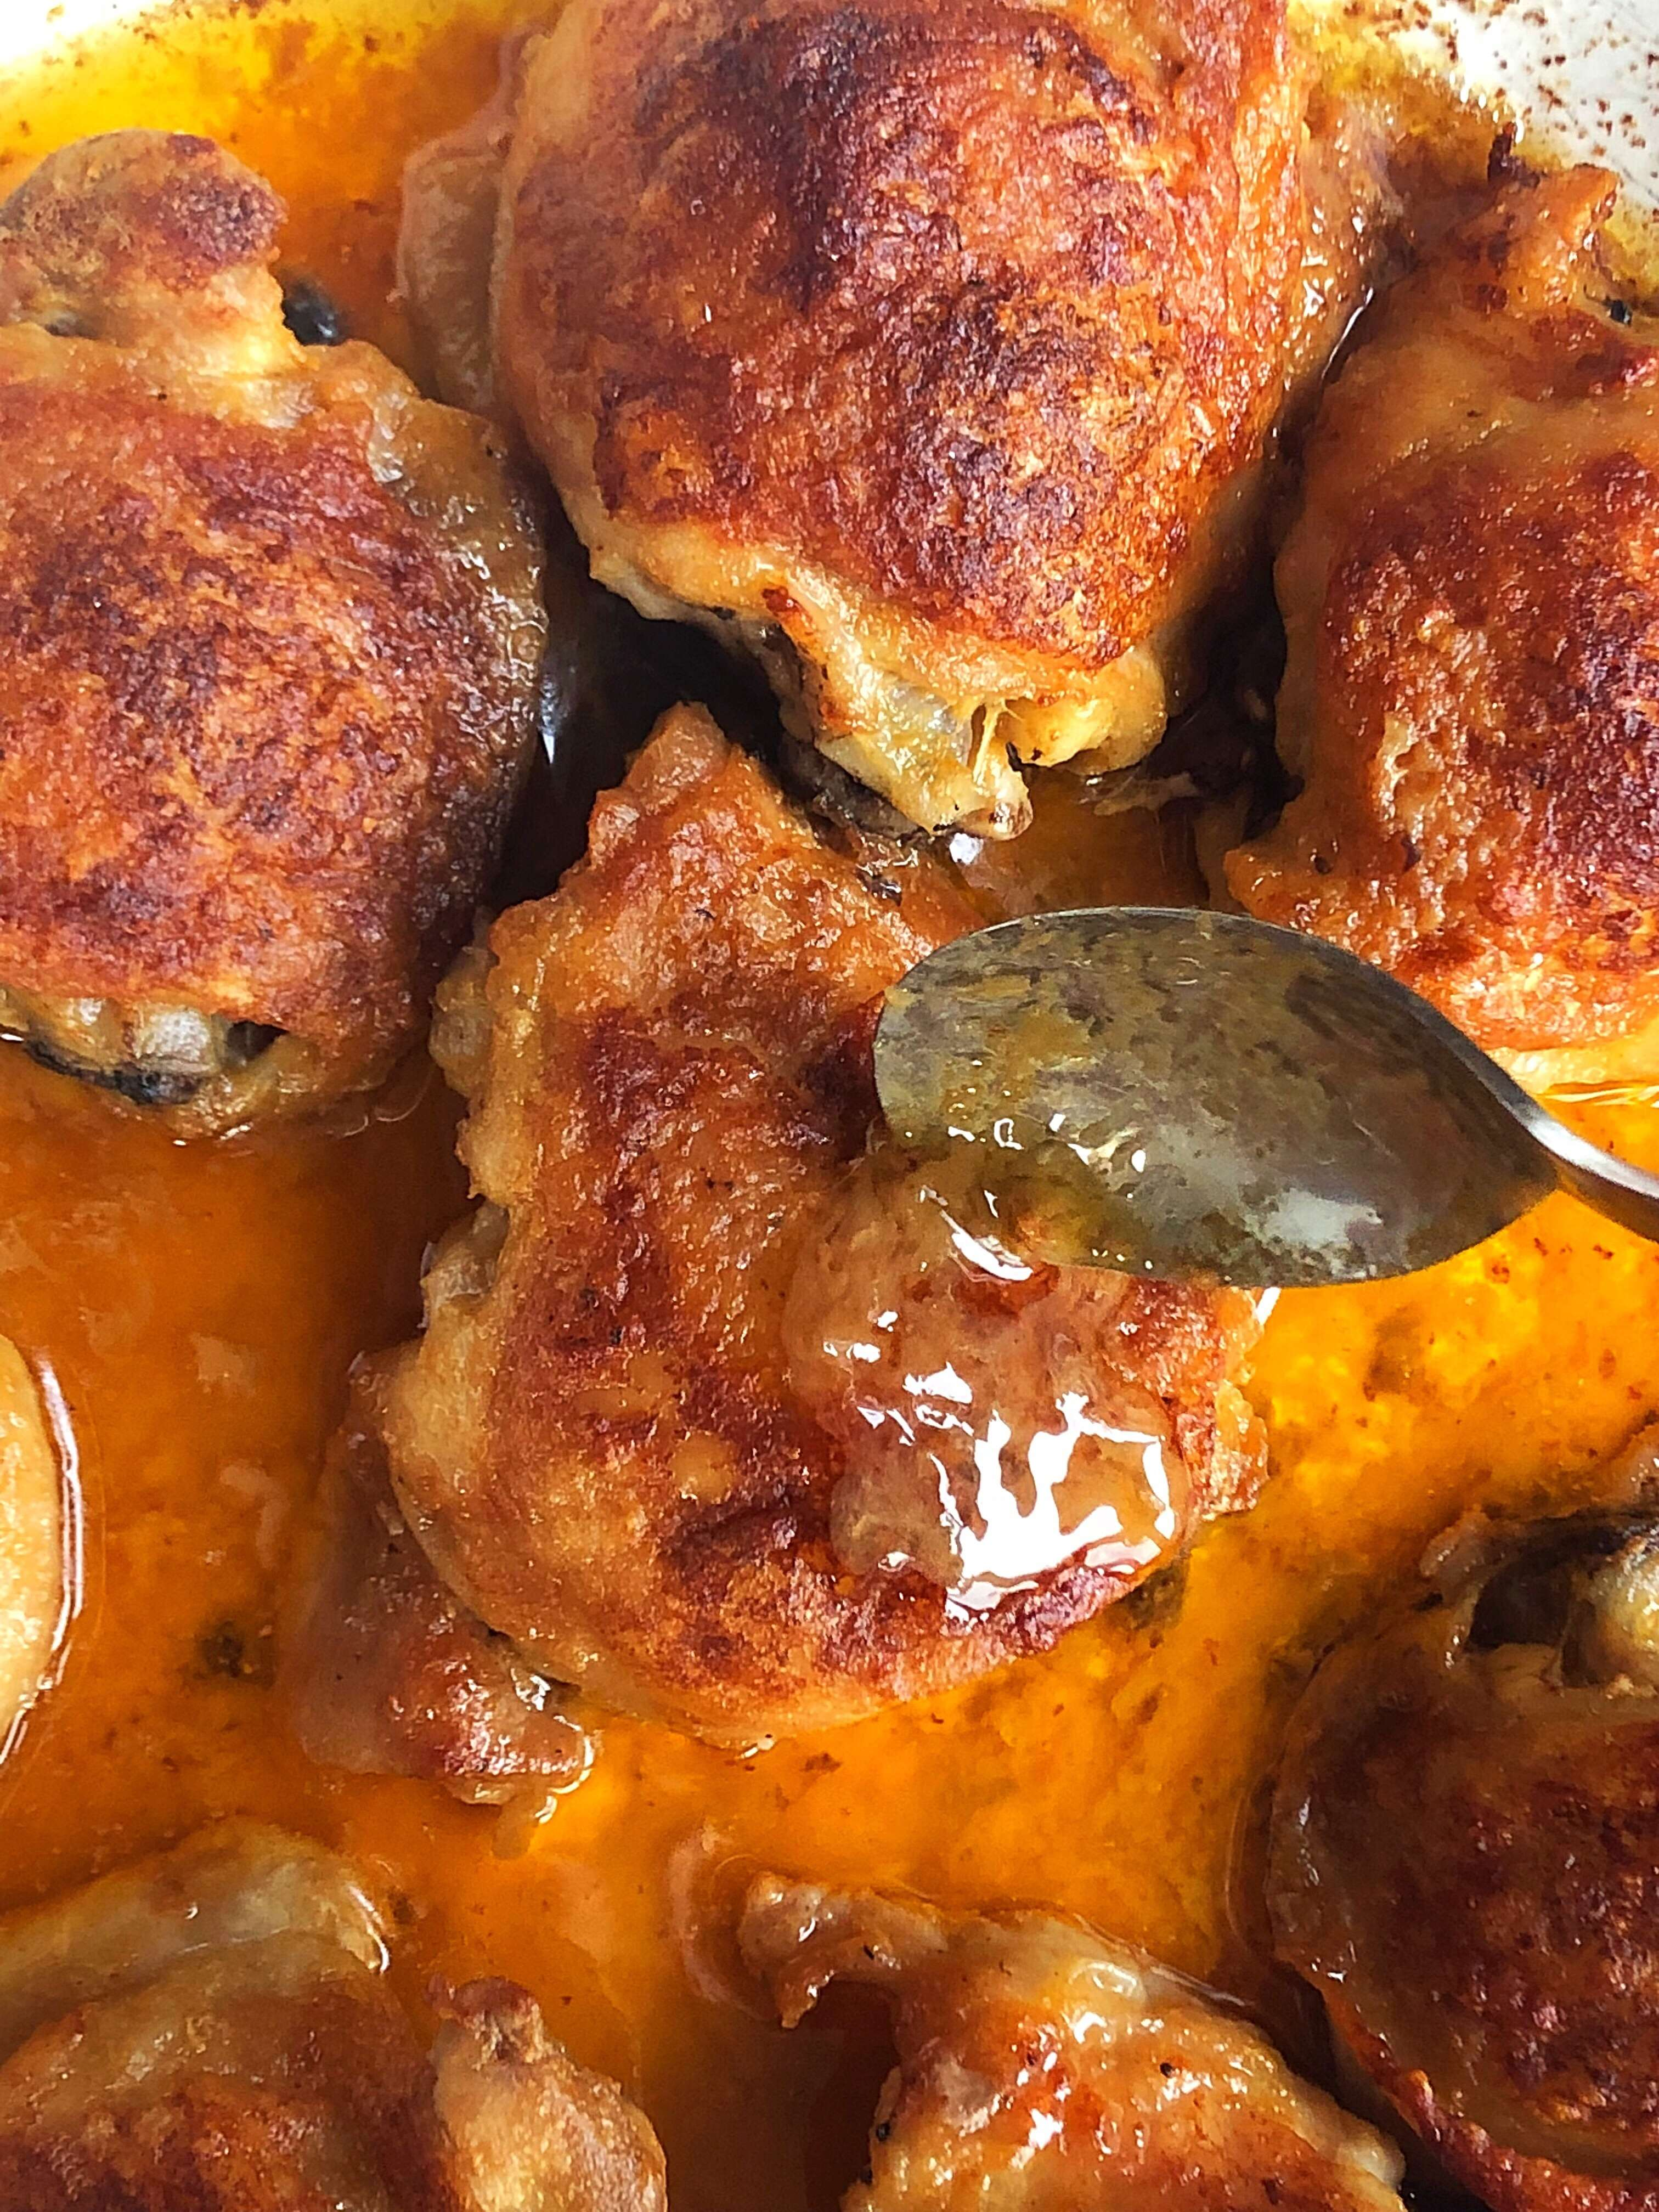 Basting the baked chicken thighs